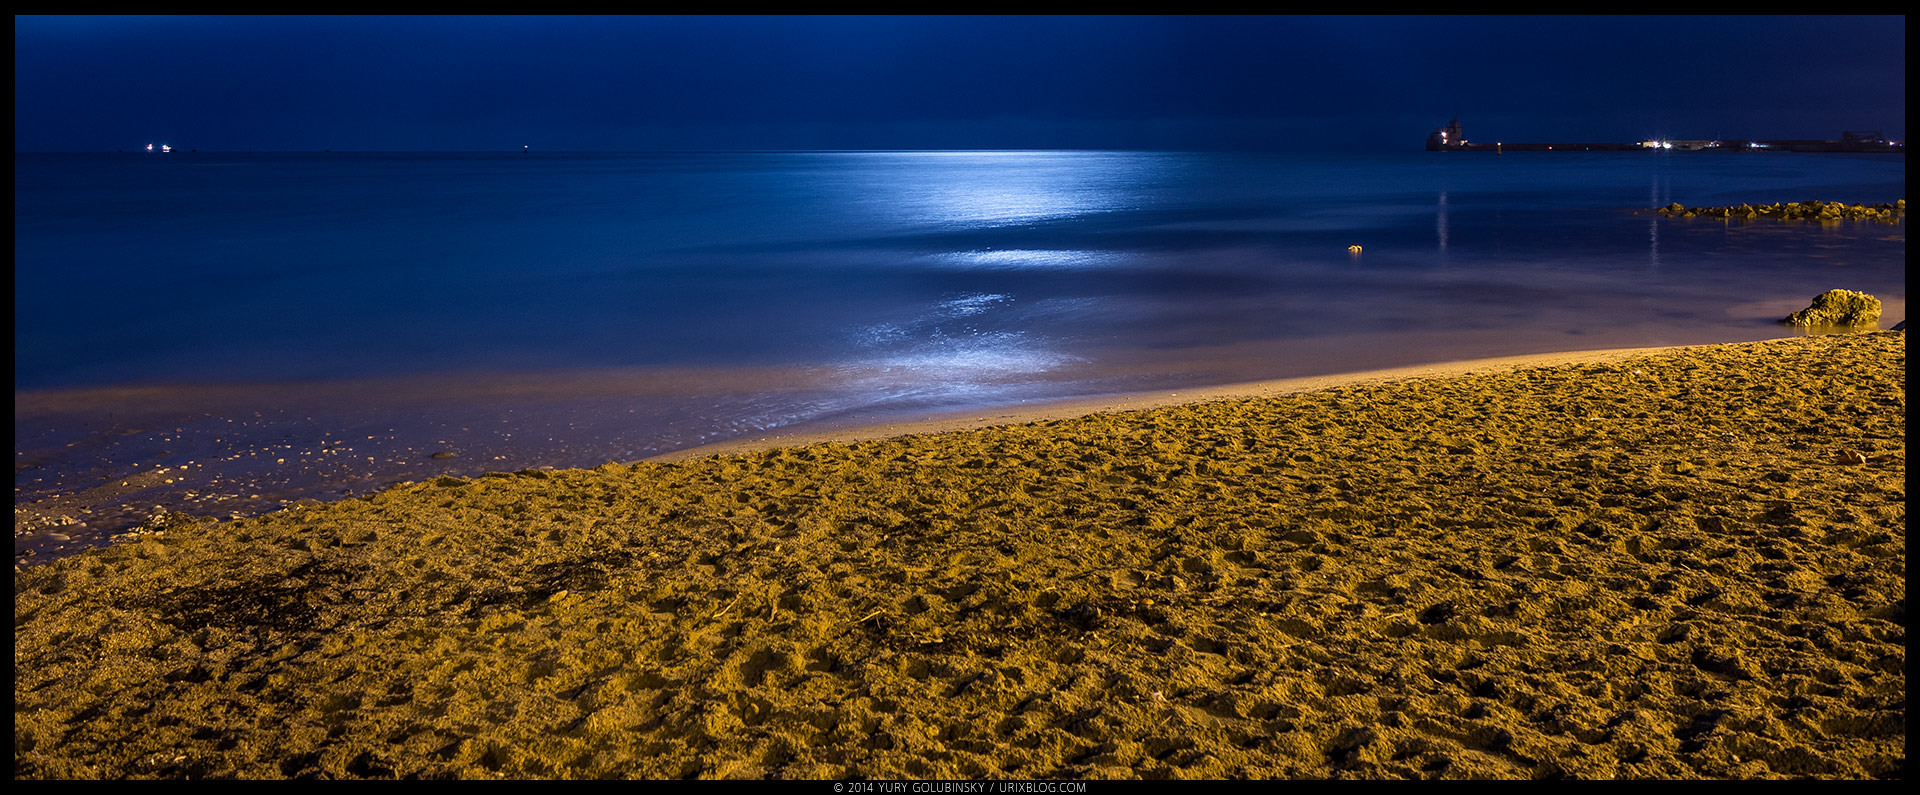 night, beach, sand, Black sea, moon, reflection, Feodosia, Crimea, Russia, winter, january, panorama, 2015